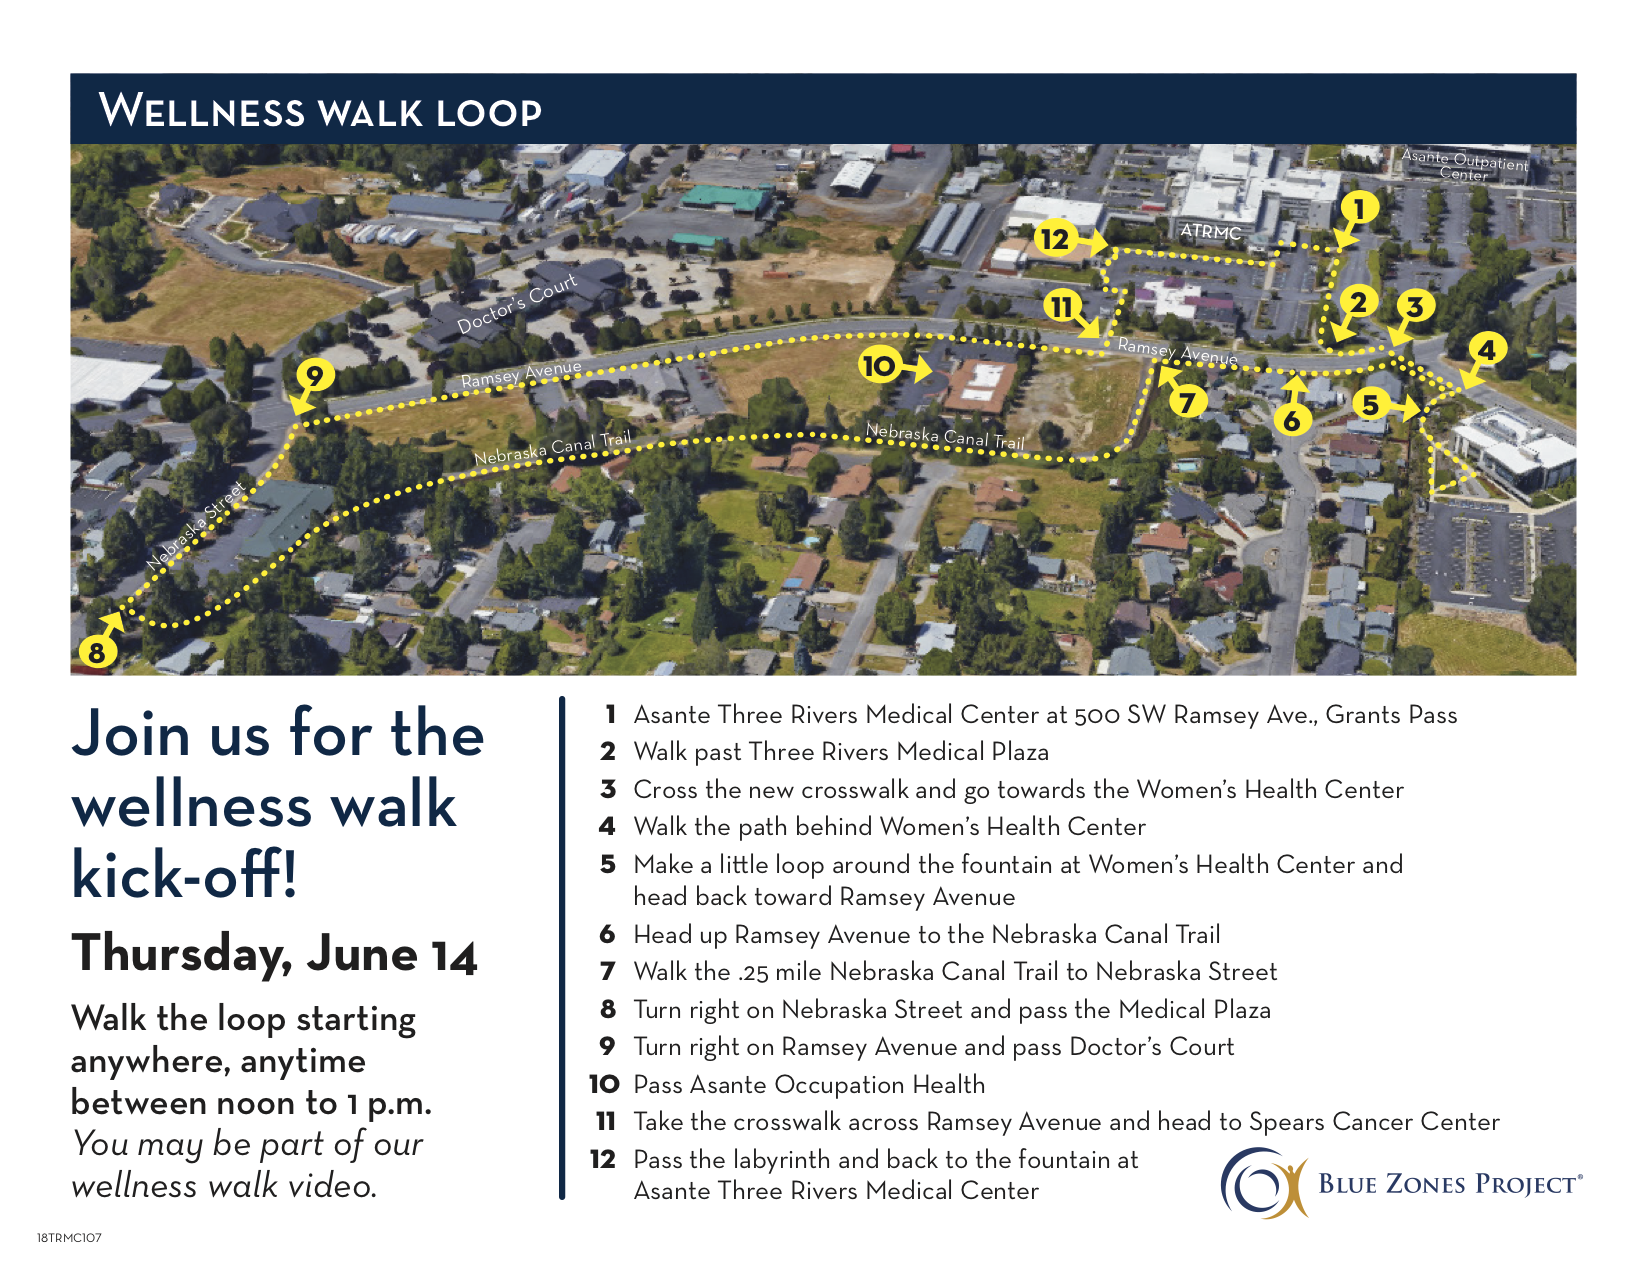 Wellness Walk Loop - Blue Zones Project Grants Pass